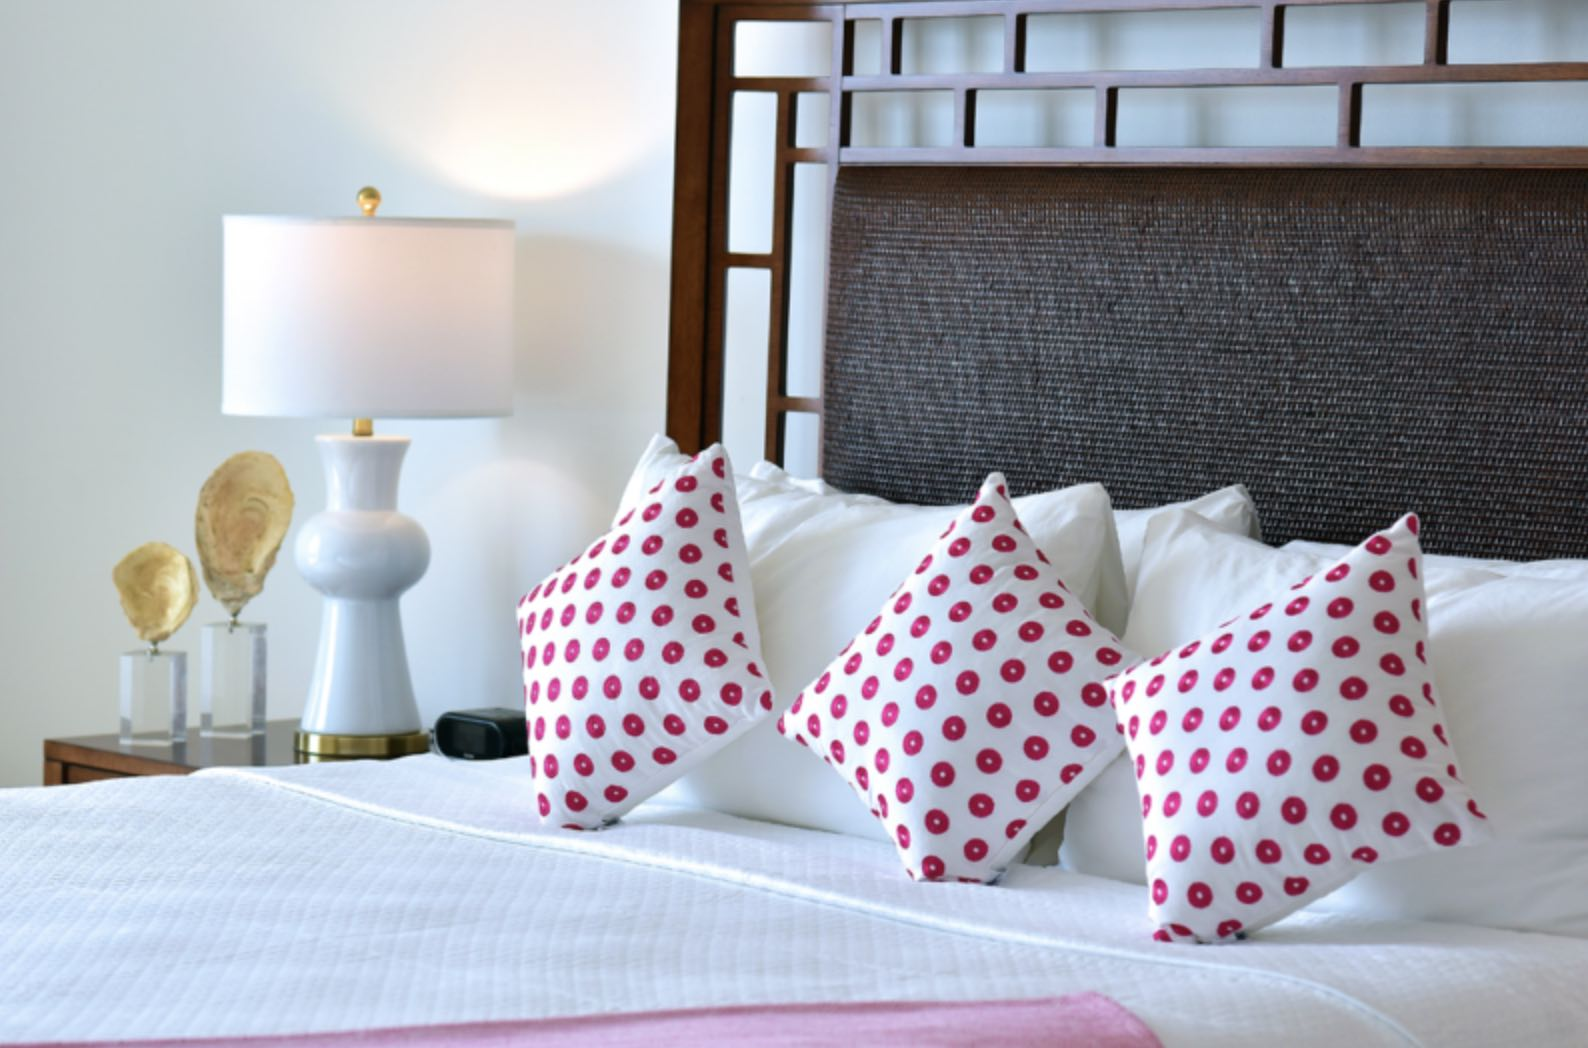 The tasteful decor at the Coral Beach Club showing bed with pink dotted cushions